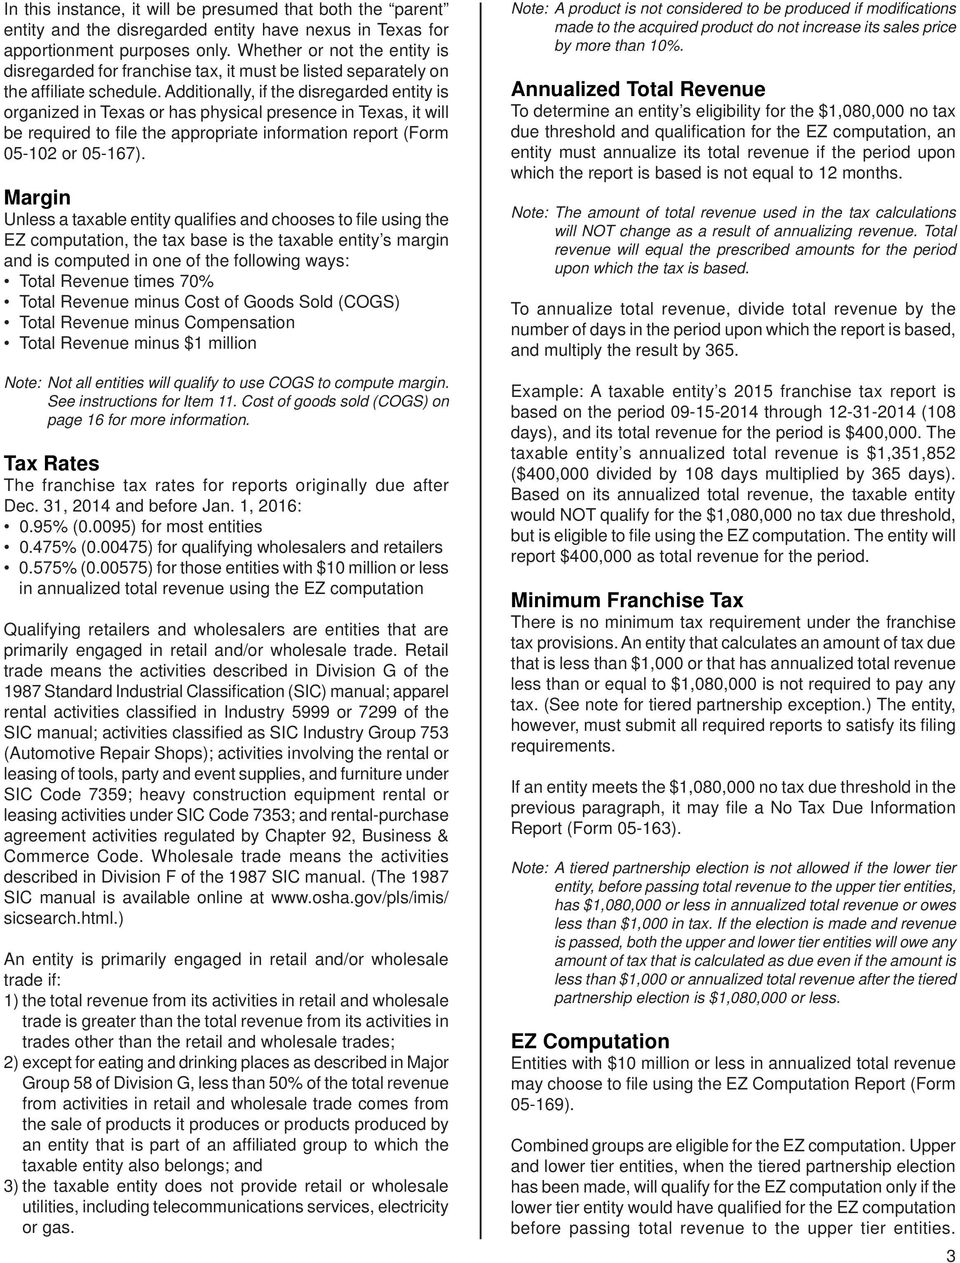 2015 Texas Franchise Tax Report Information And Instructions Pdf